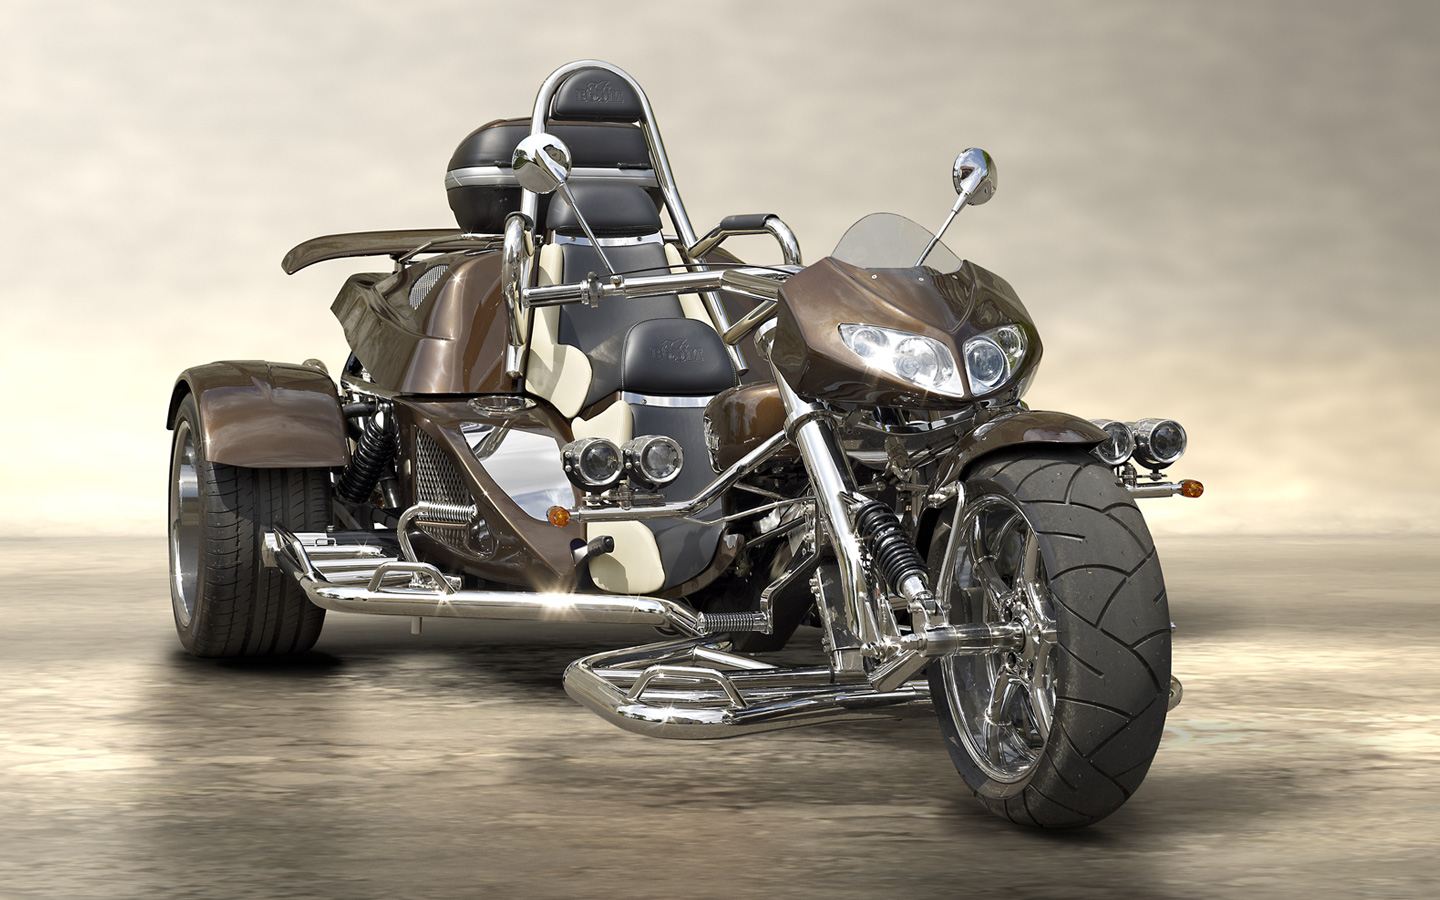 tl_files/boomtrikes/images/produkte/fighter/boomtrikes5_front.jpg